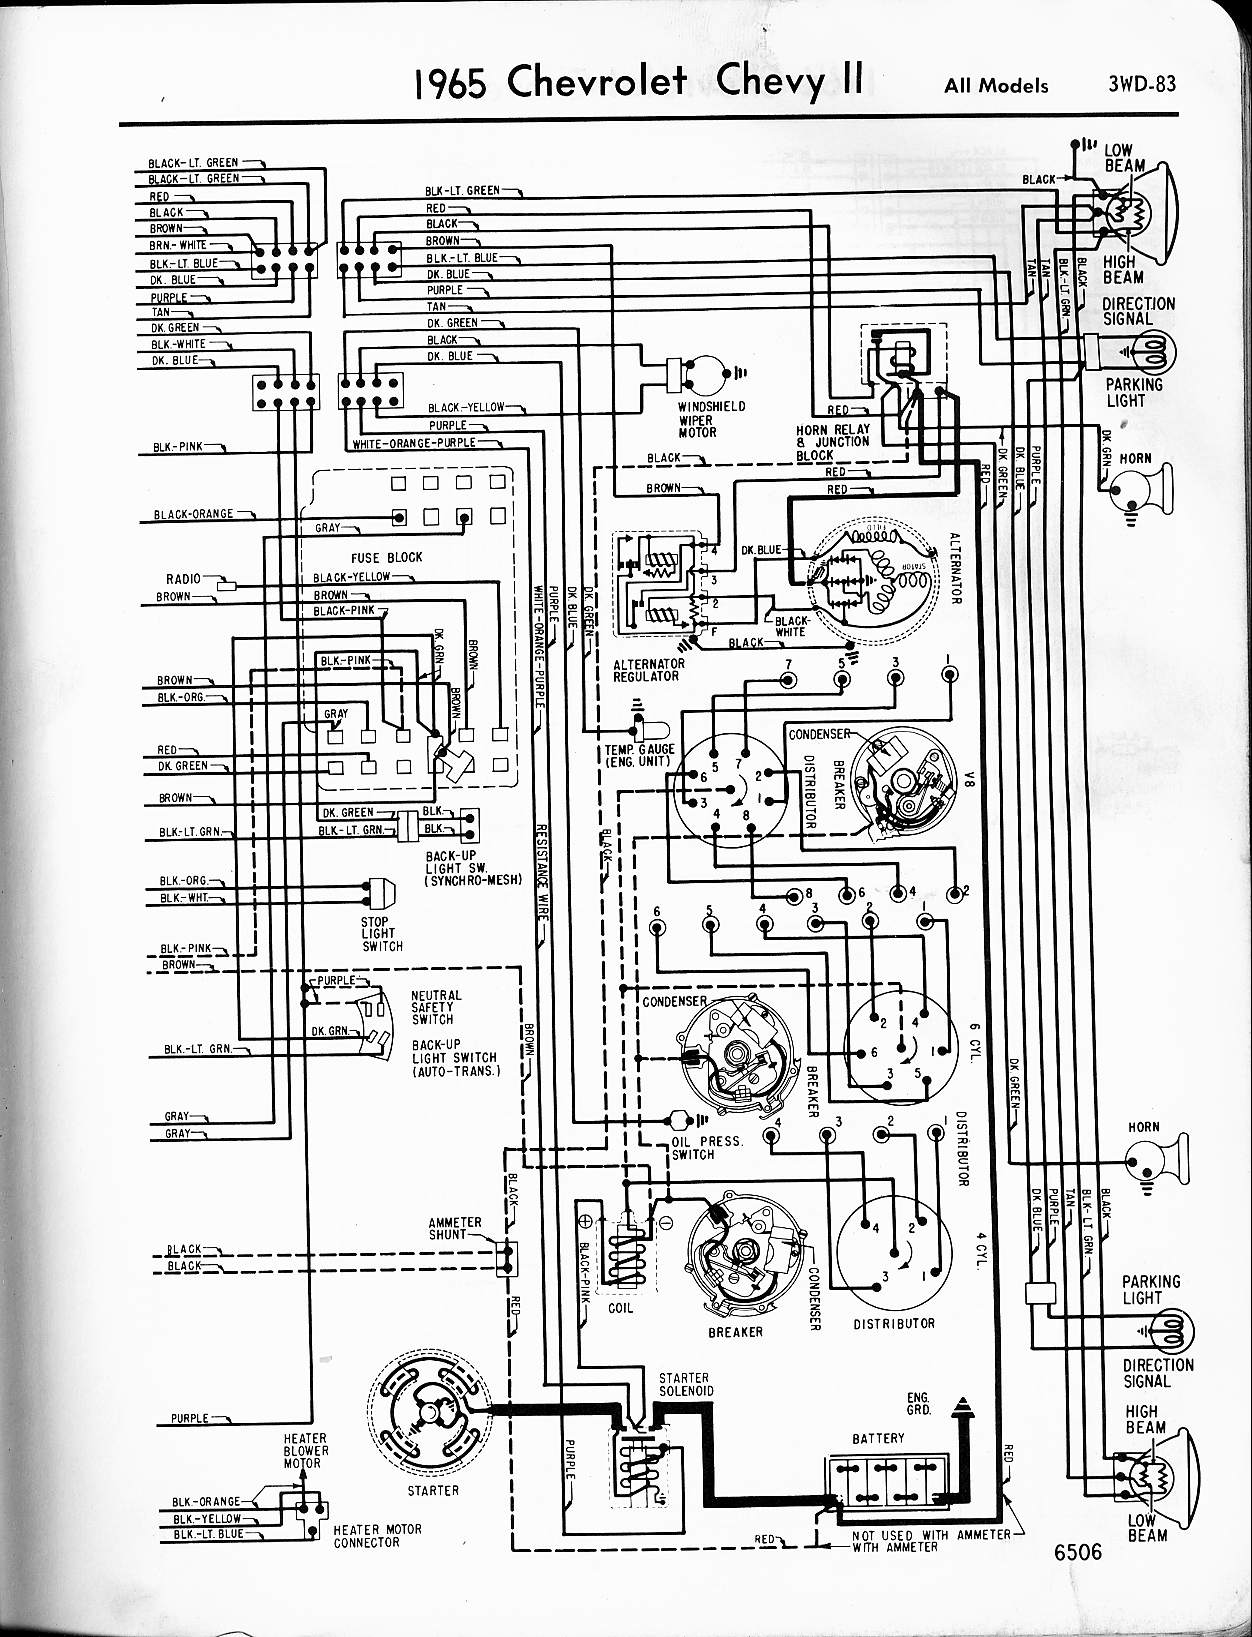 1965 chevy ii wiring diagram figure a figure b